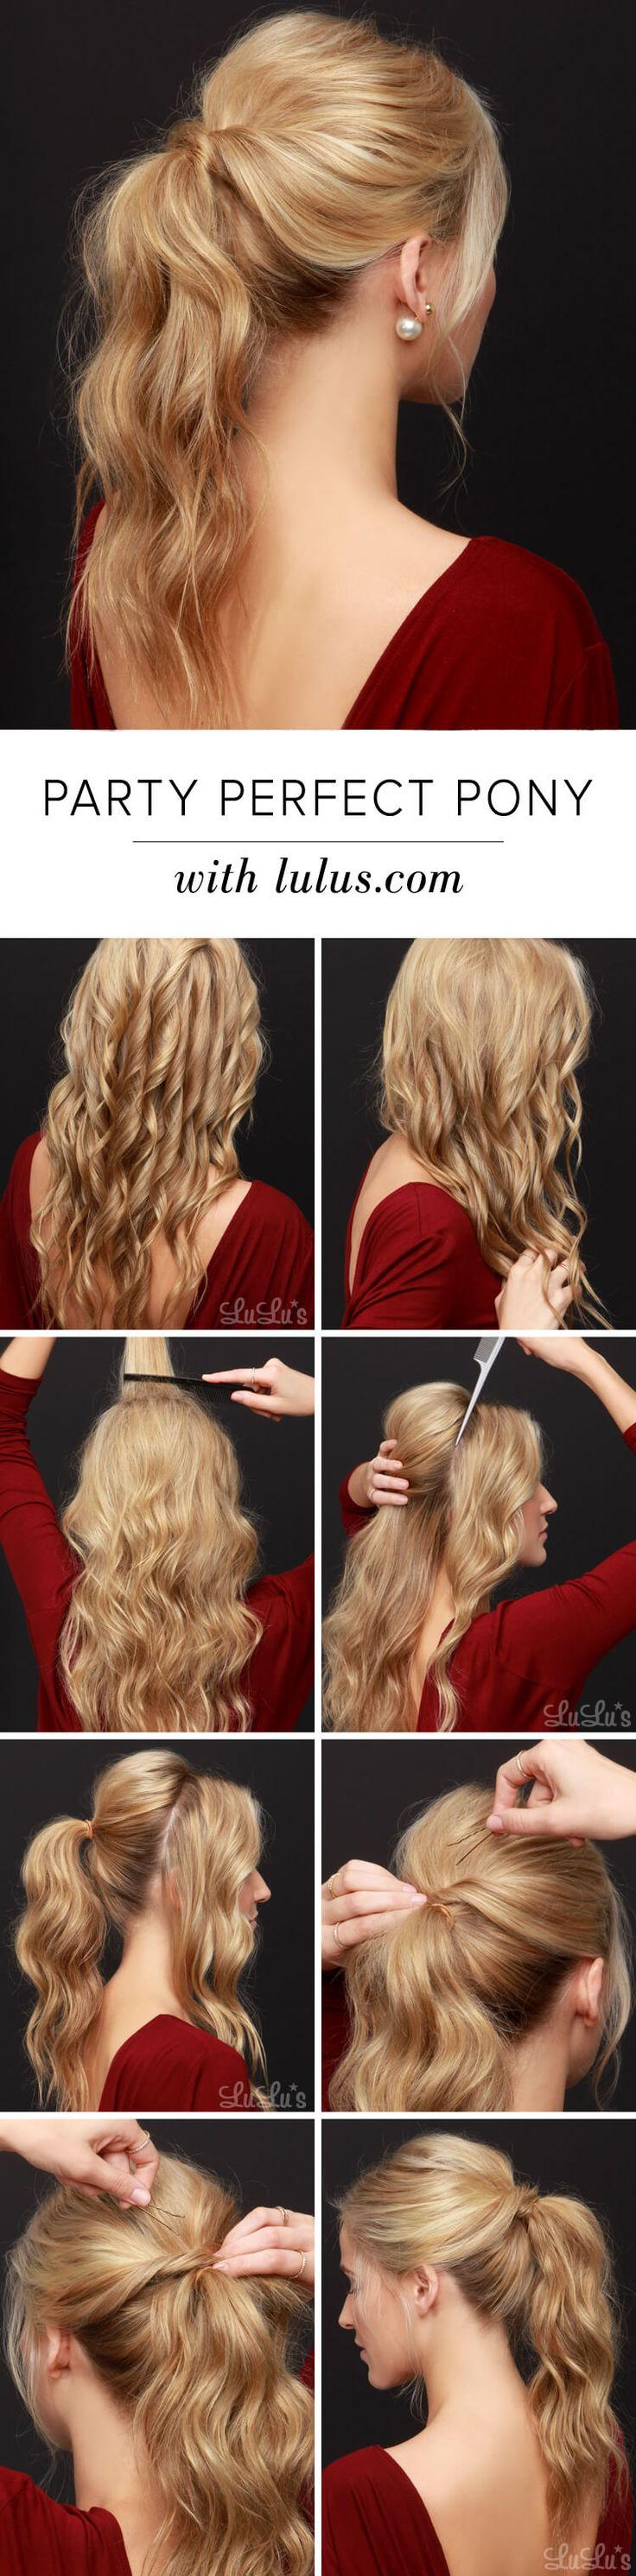 Best 25 High ponytails ideas on Pinterest